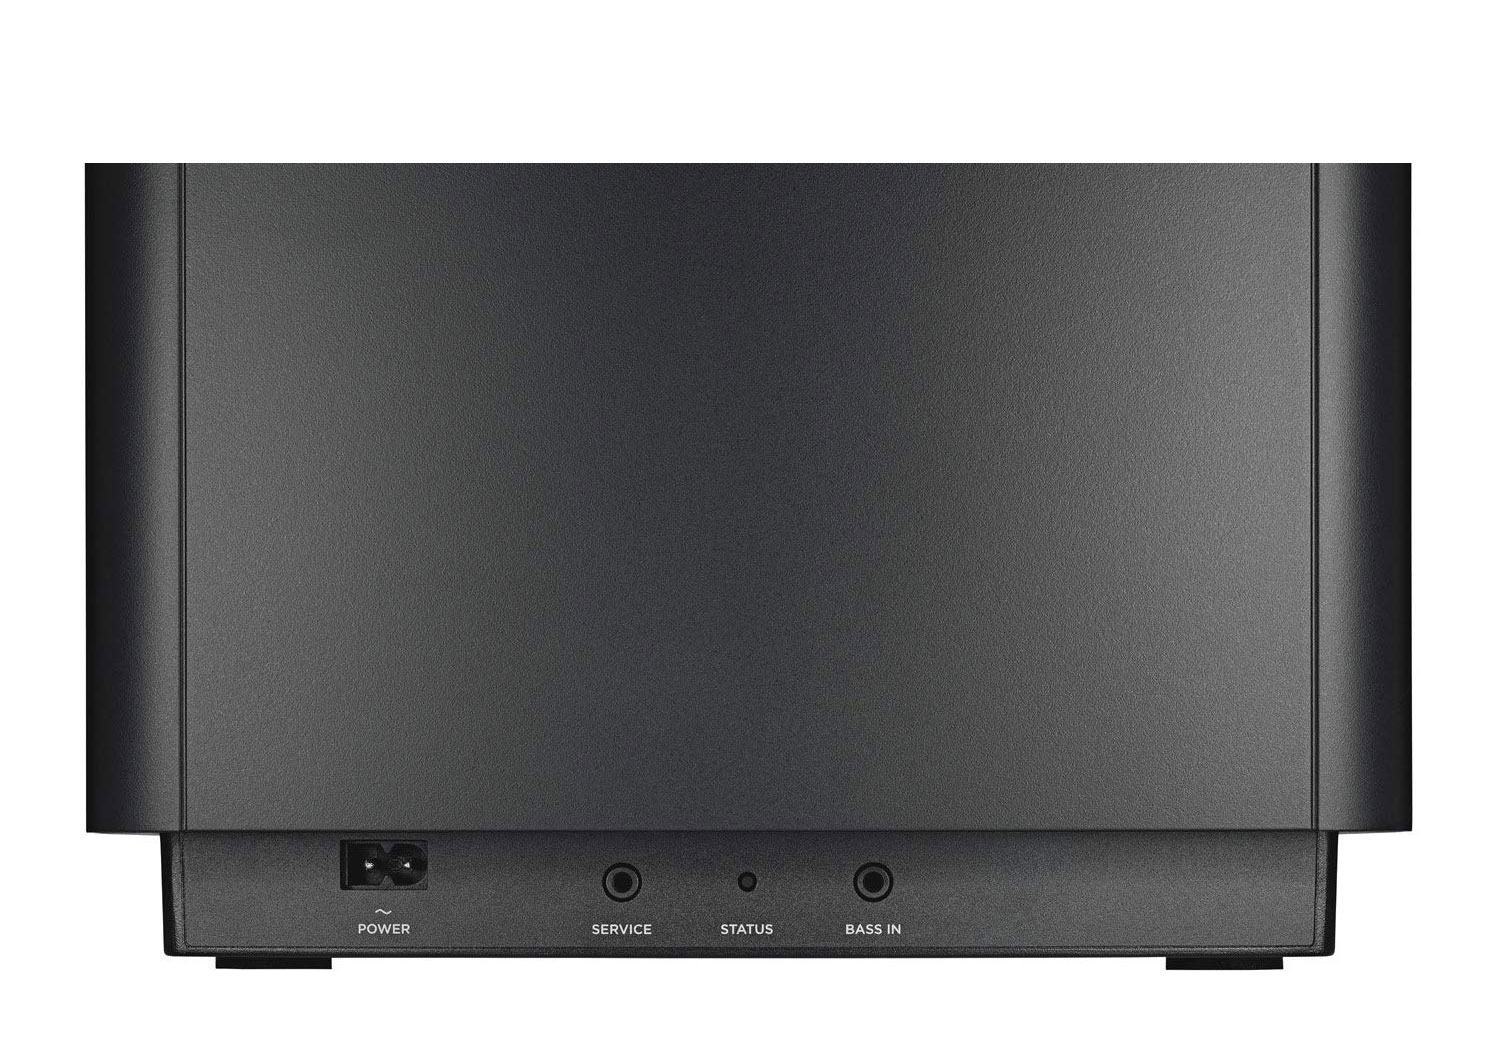 Acoustimass-300 Wireless Bass Module Sound Bars (Black)